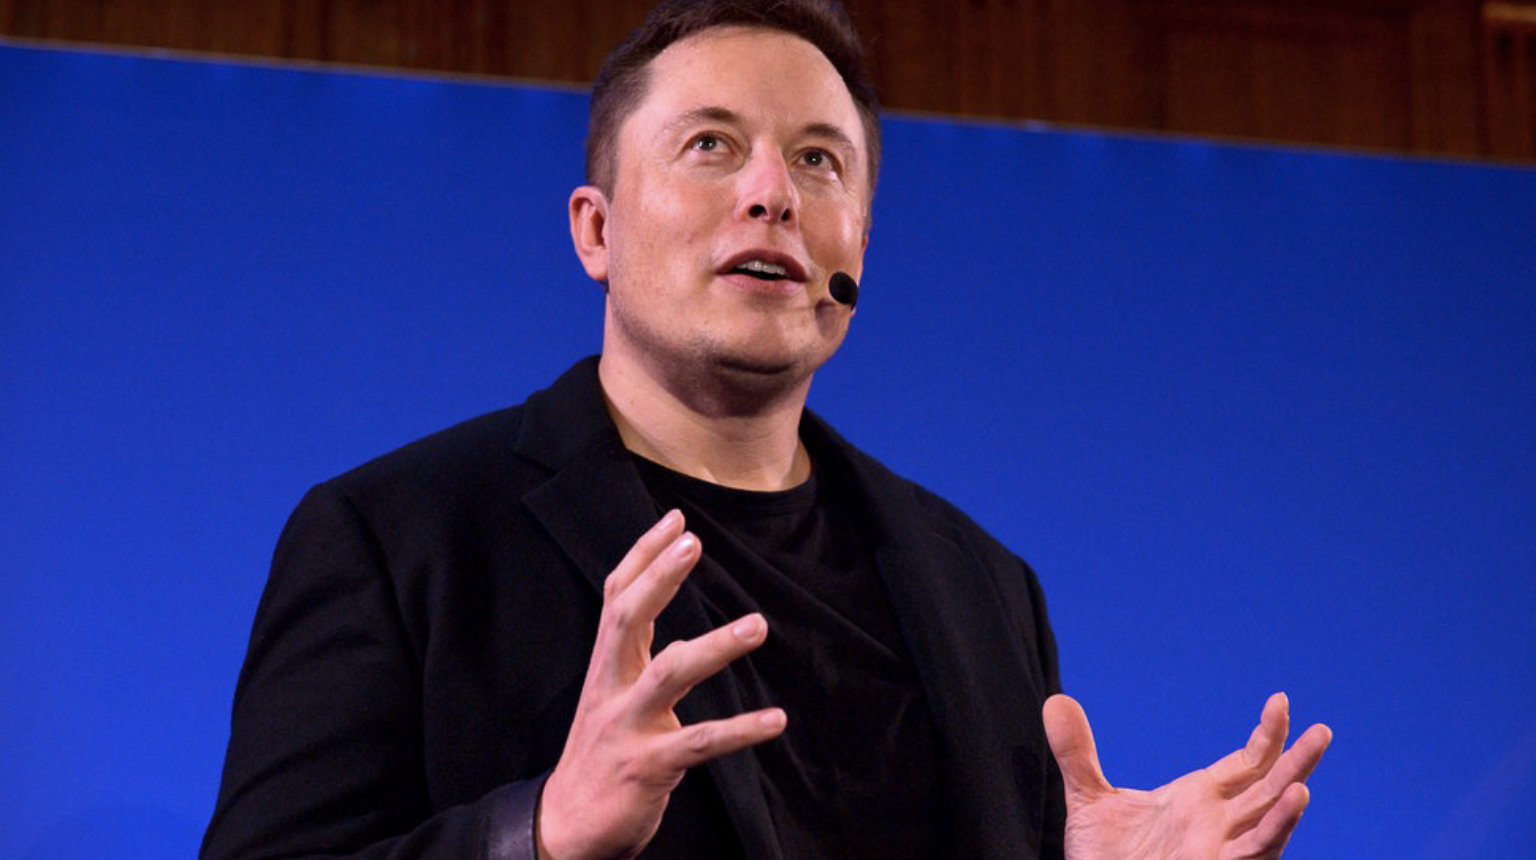 Elon Musk's New Company to Merge Human Brains with Machines - Paul Ratner